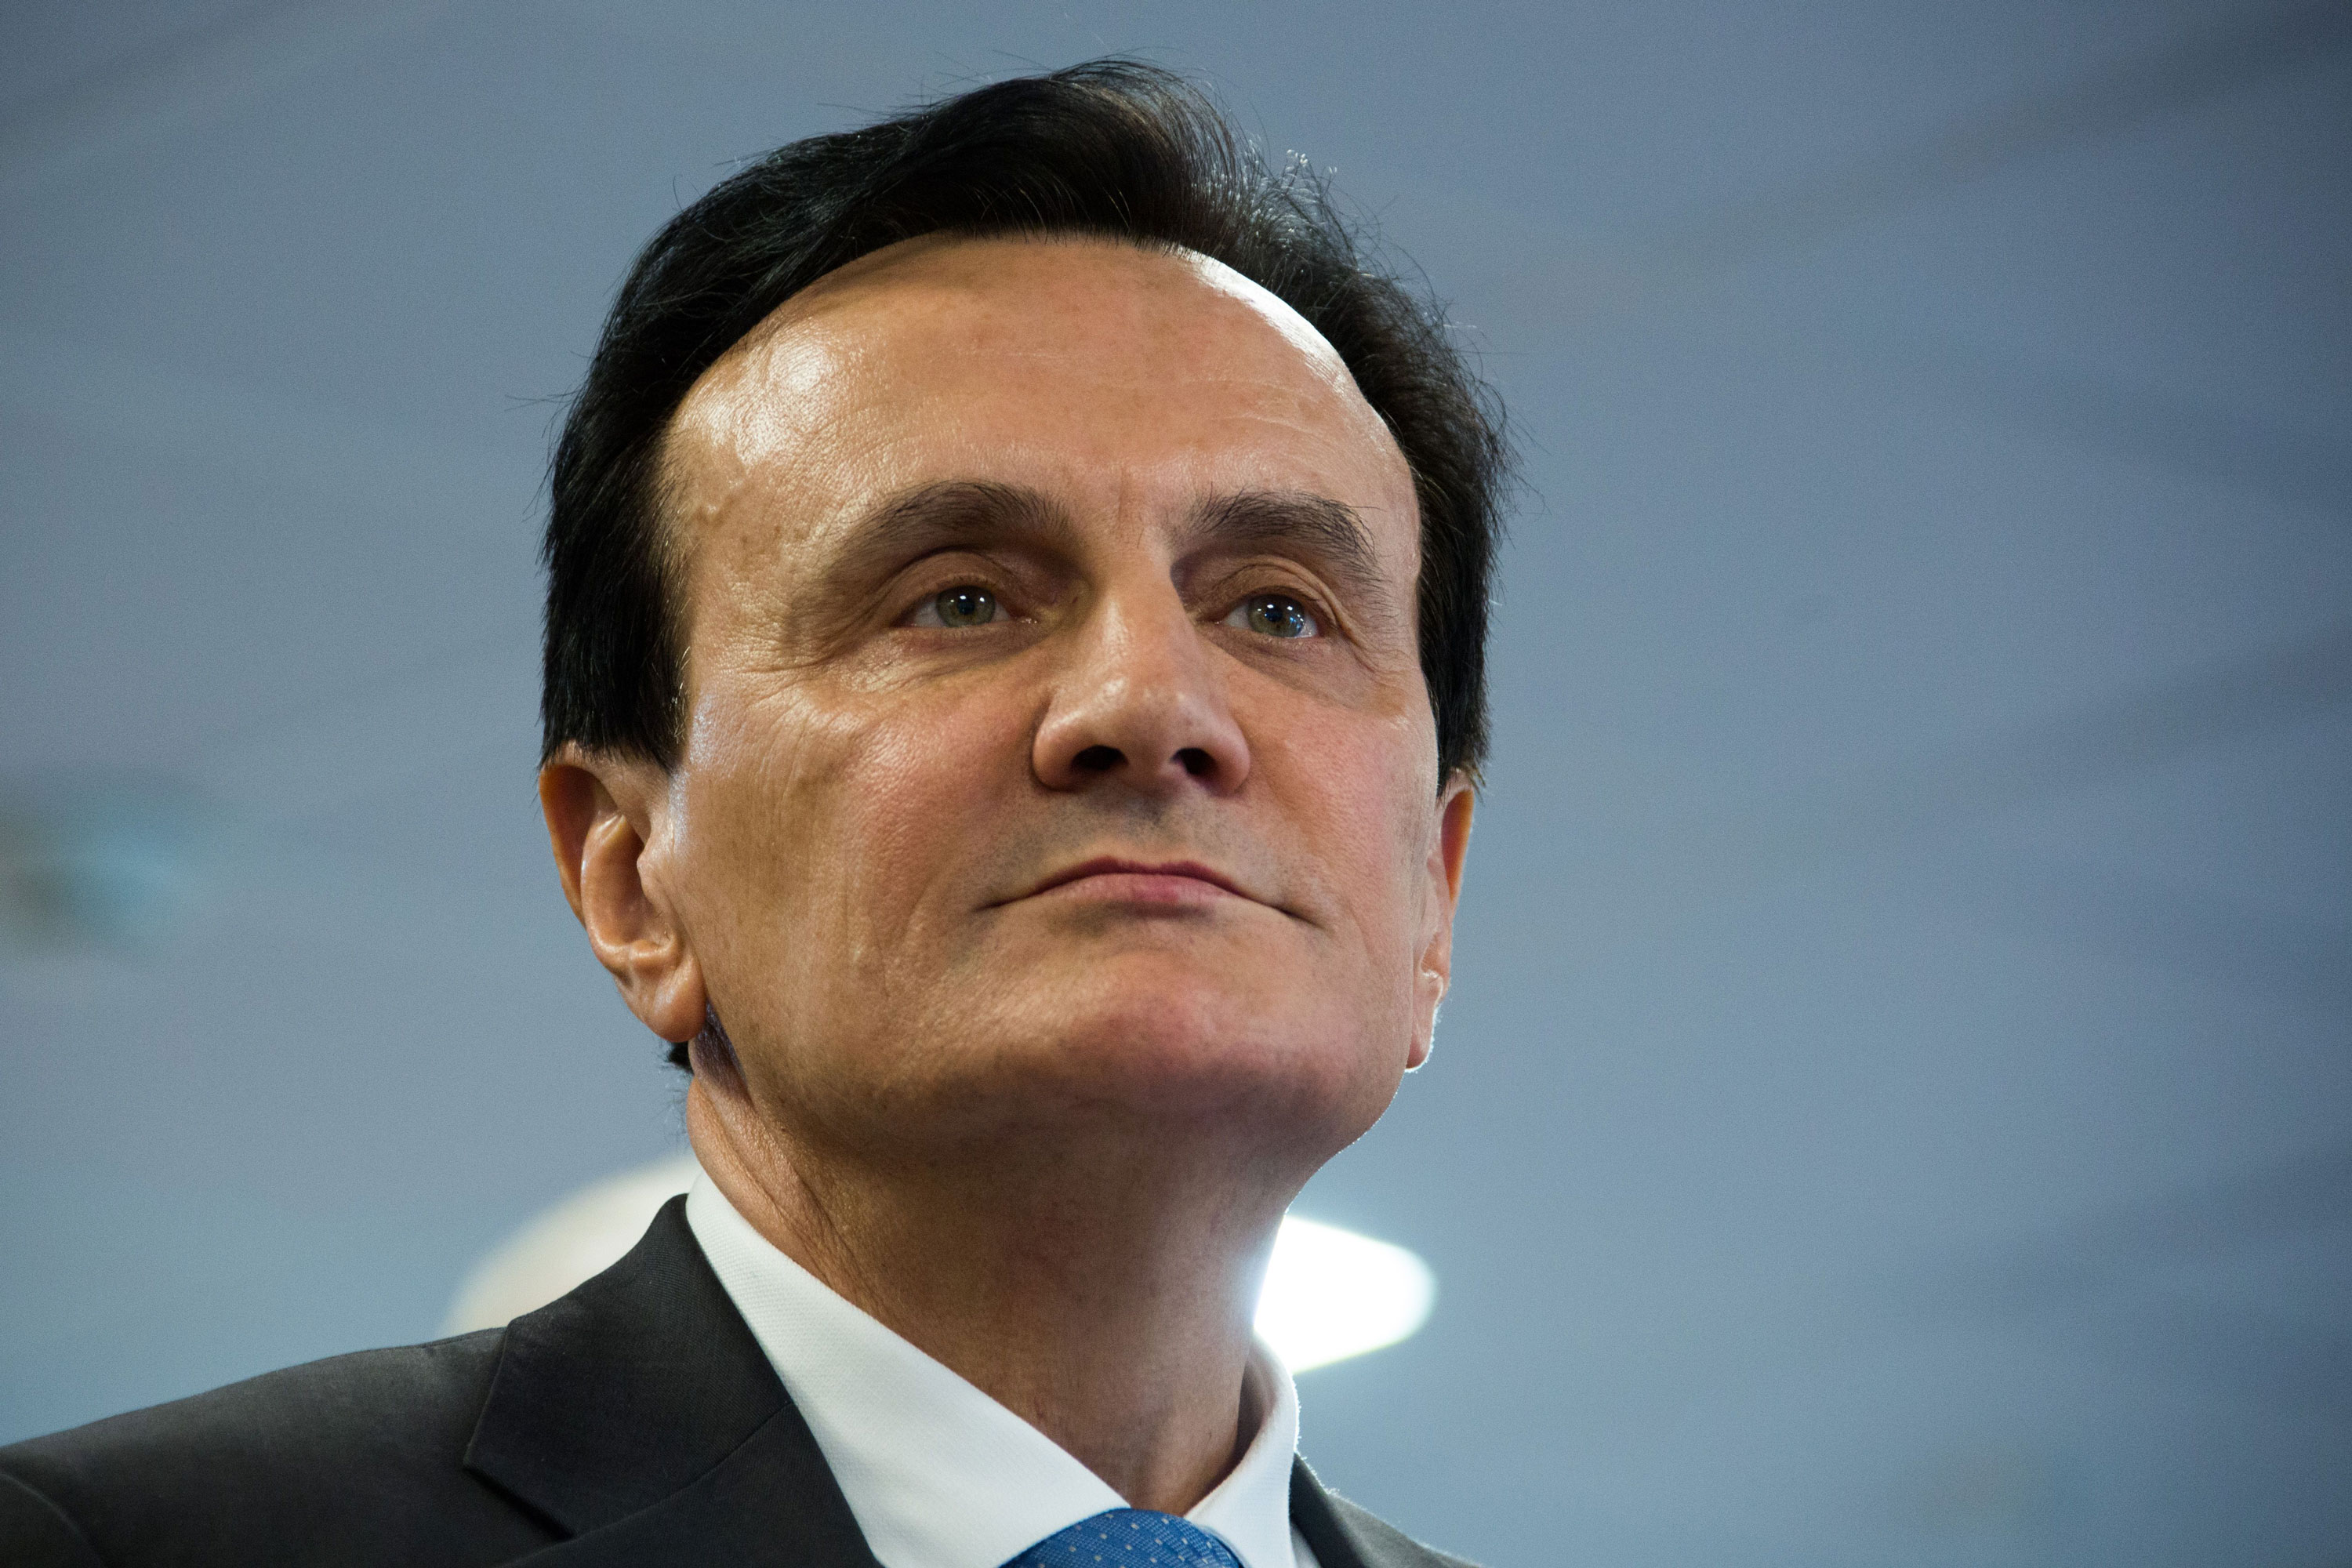 EU vaccine delivery dates weren't guaranteed, says AstraZeneca CEO